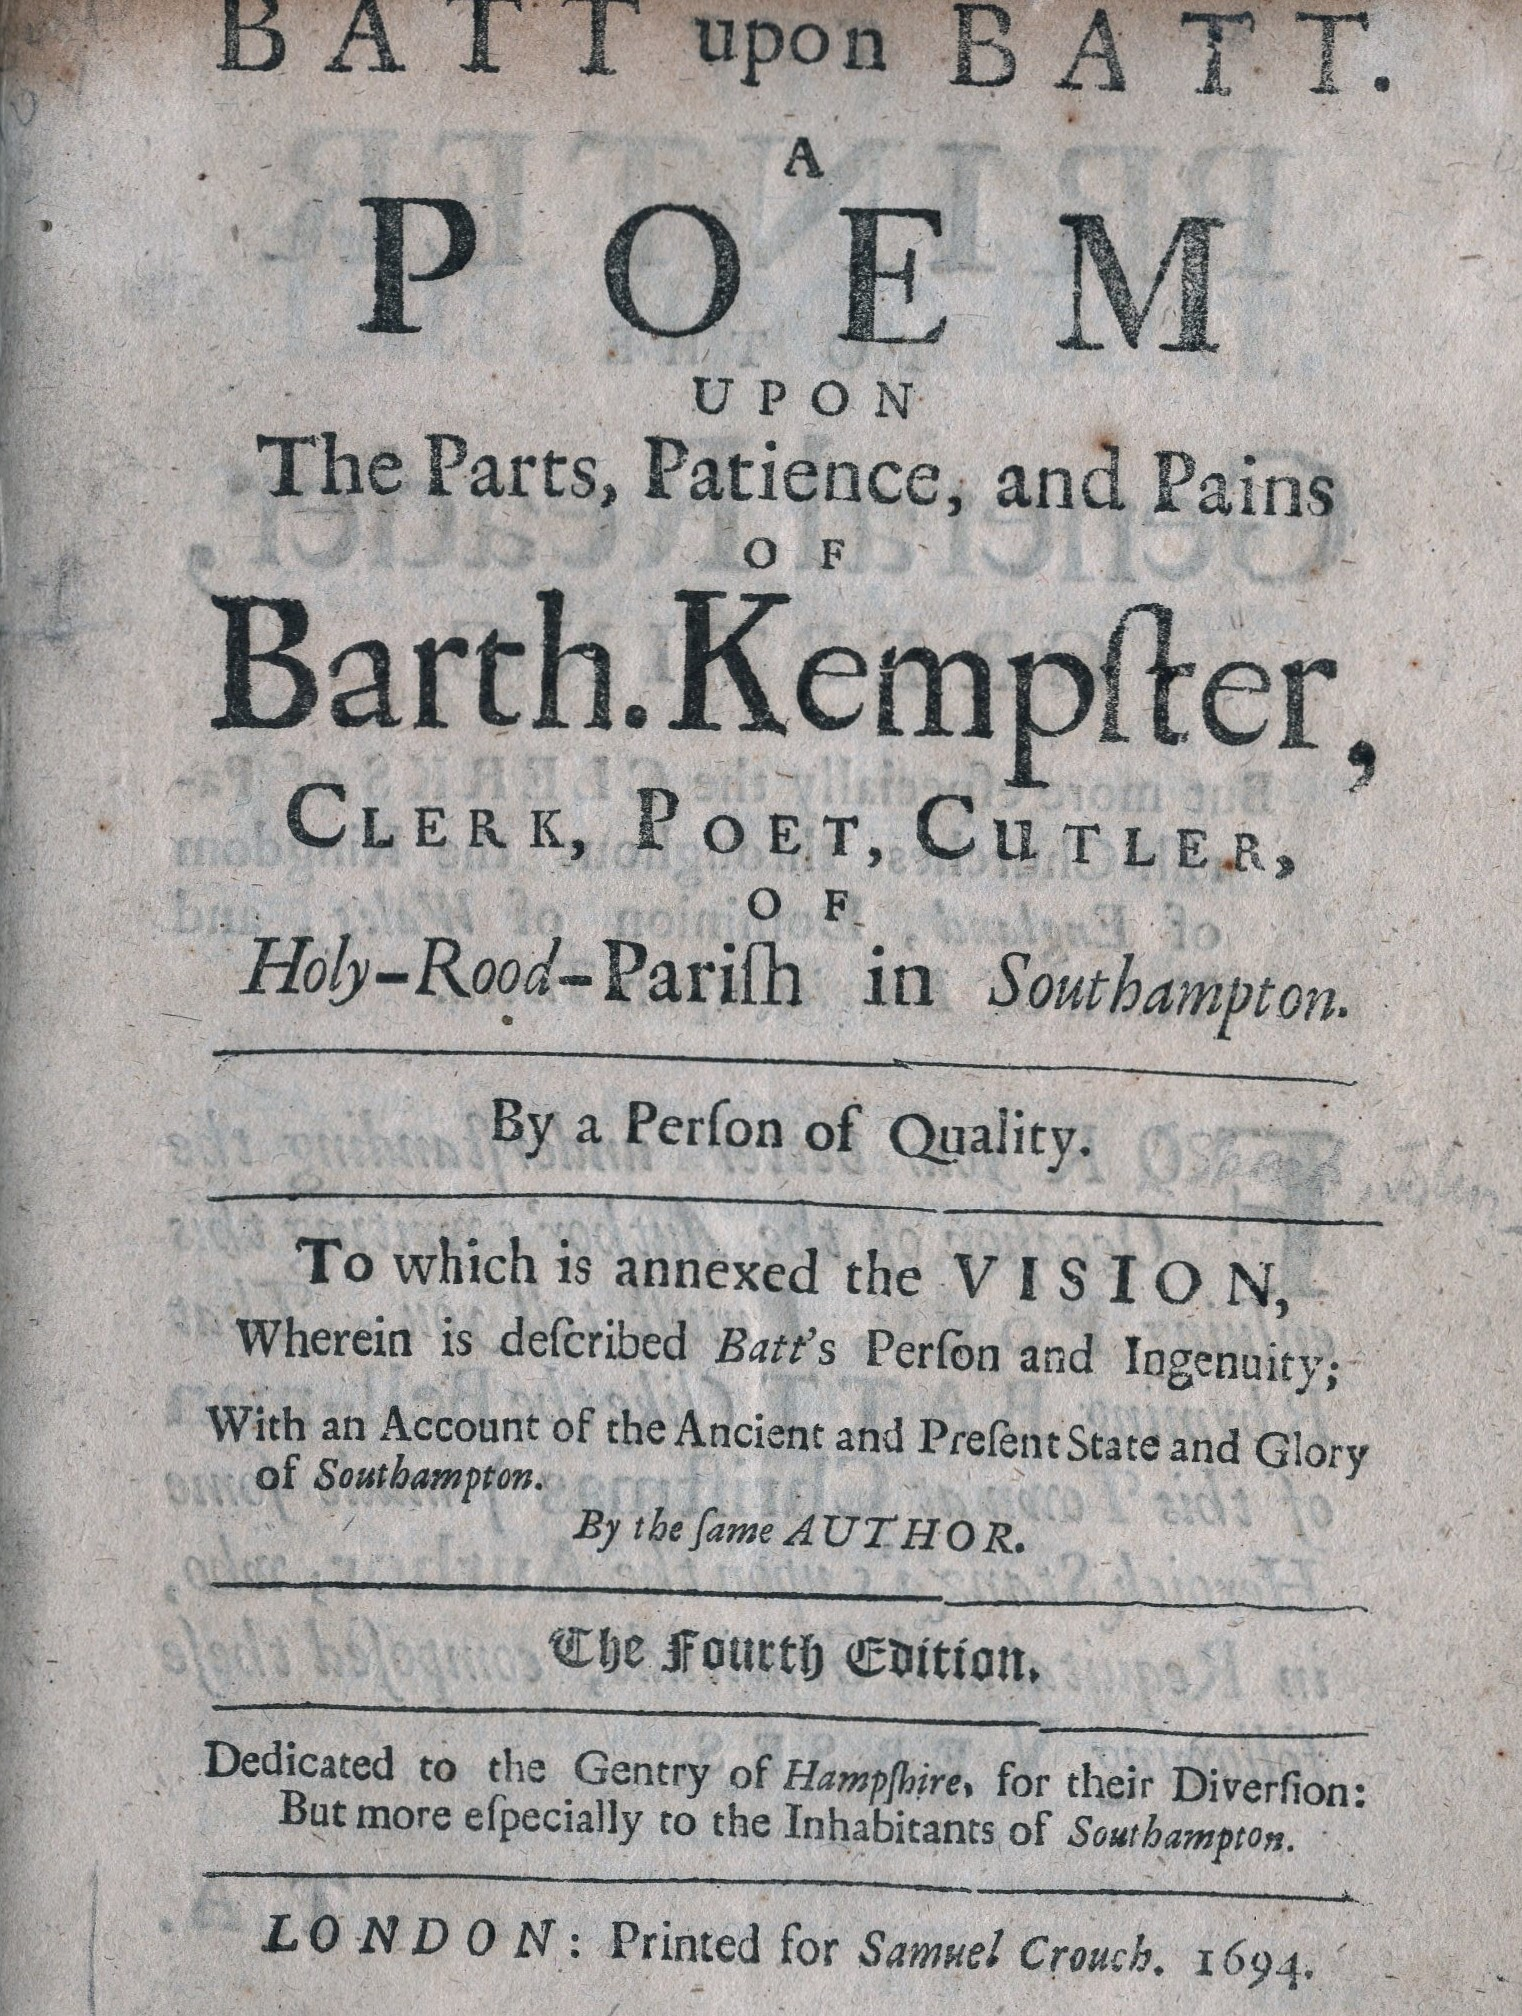 A Poem Upon the Parts, Patience and Pains of Bartholomew Kempster